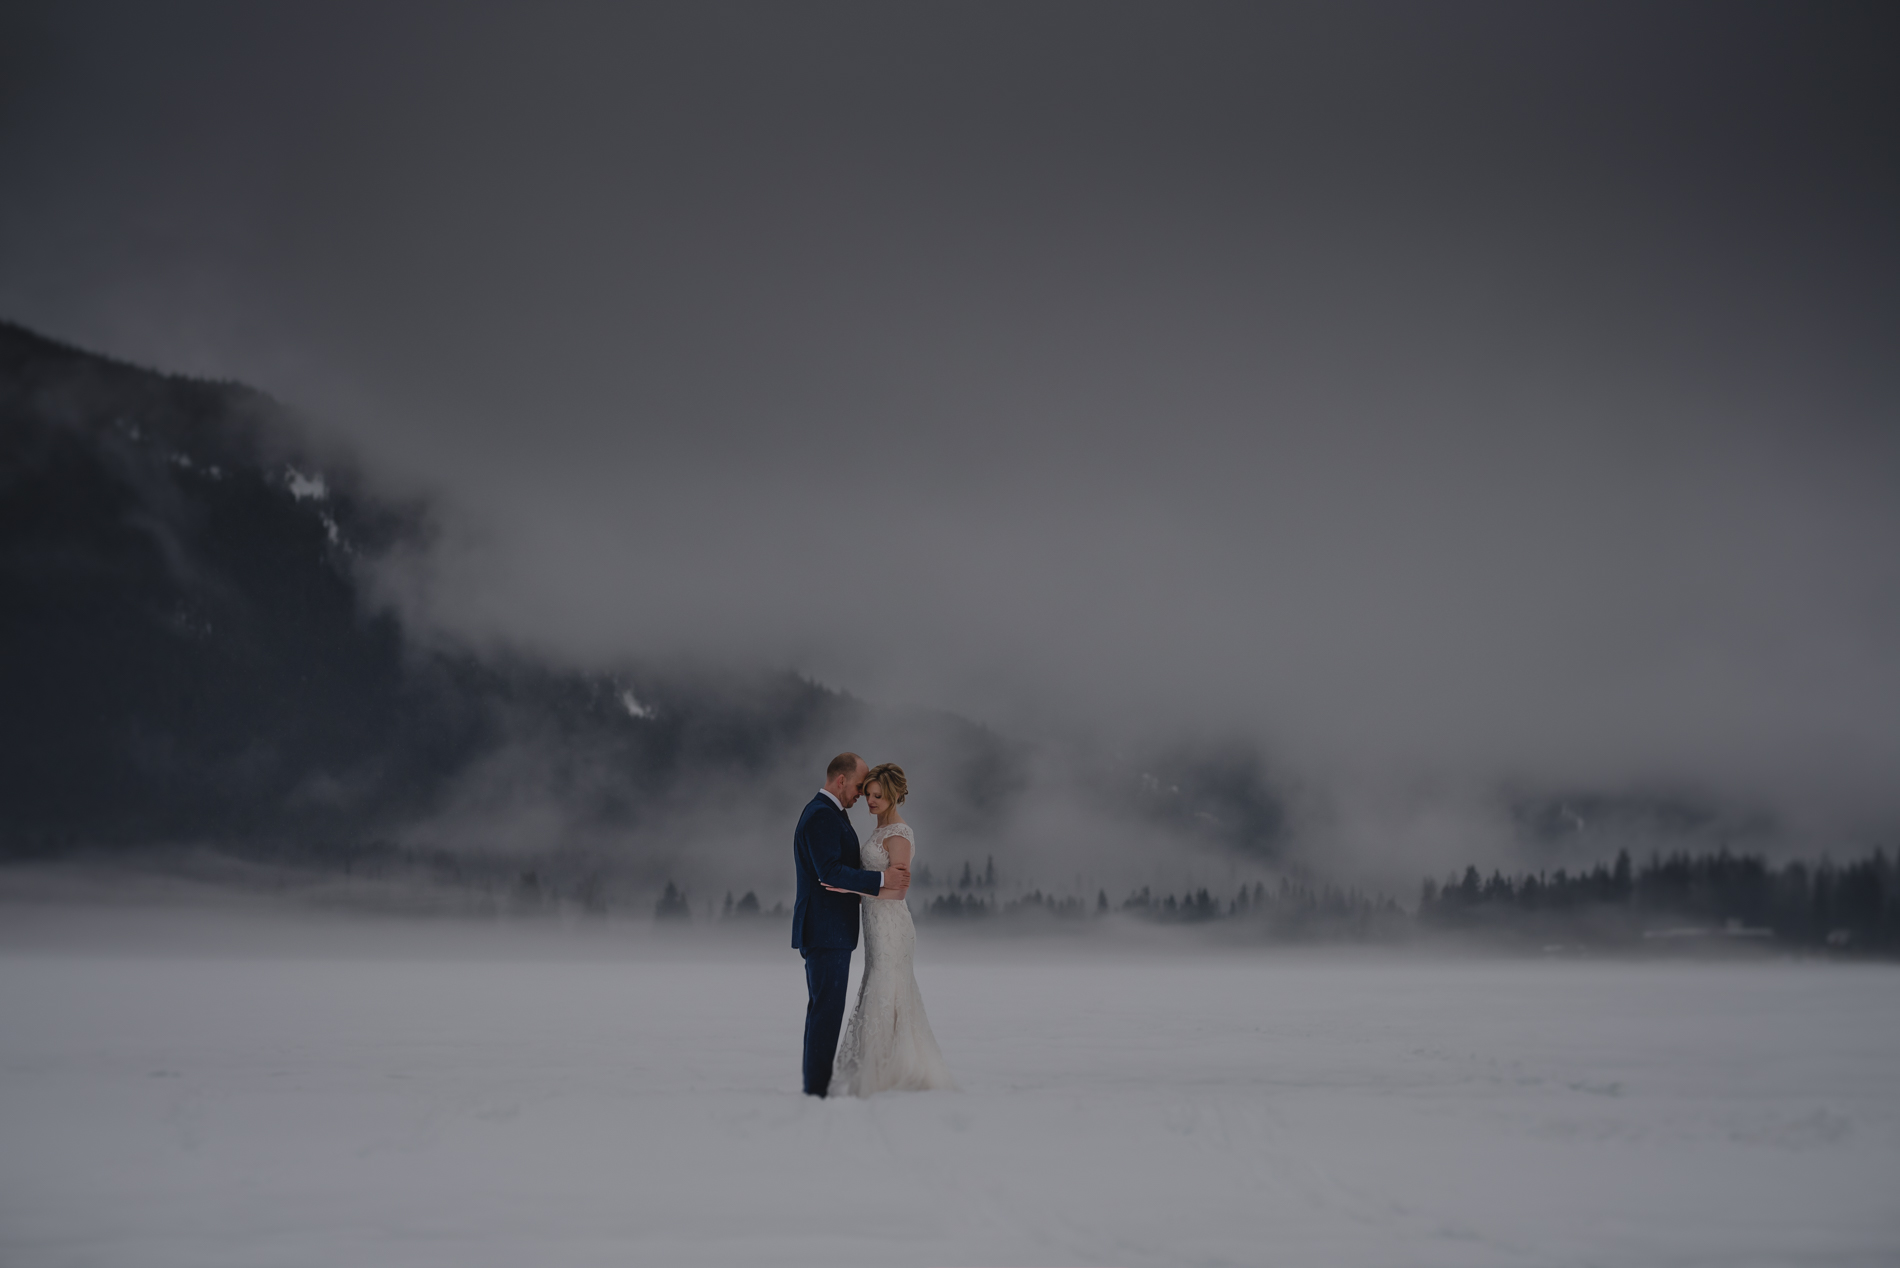 Wedding couple holding on a foggy frozen lake